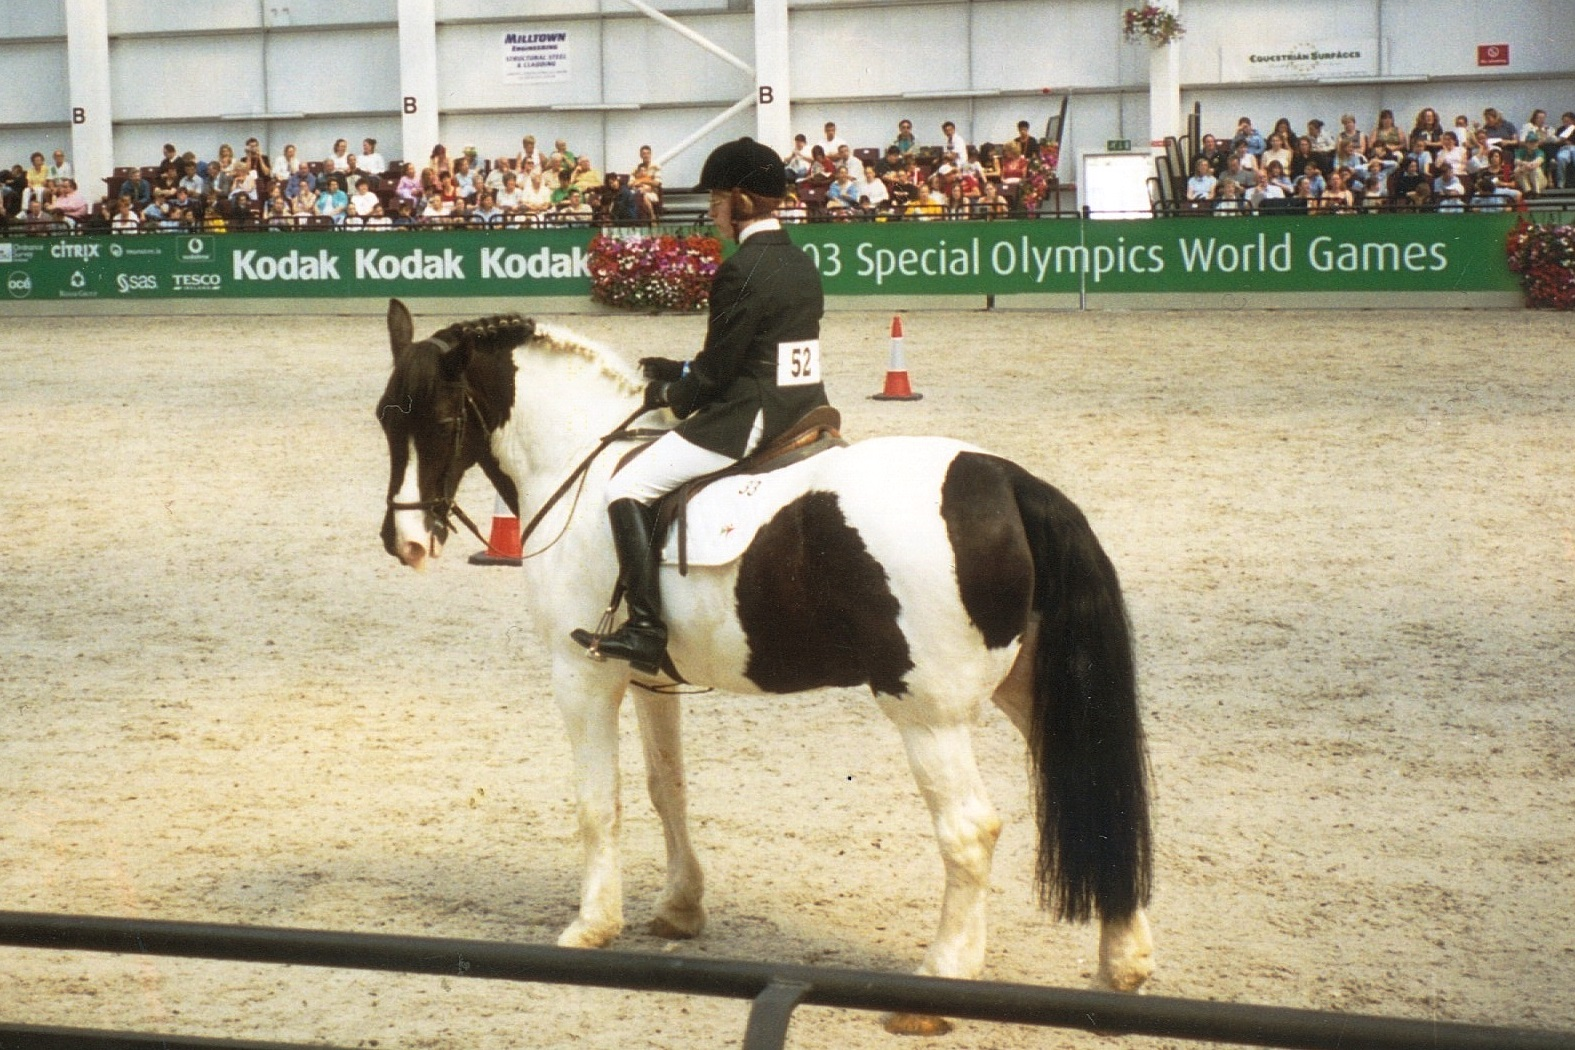 Stacey at the Special Olympics World Games in Dublin, Ireland